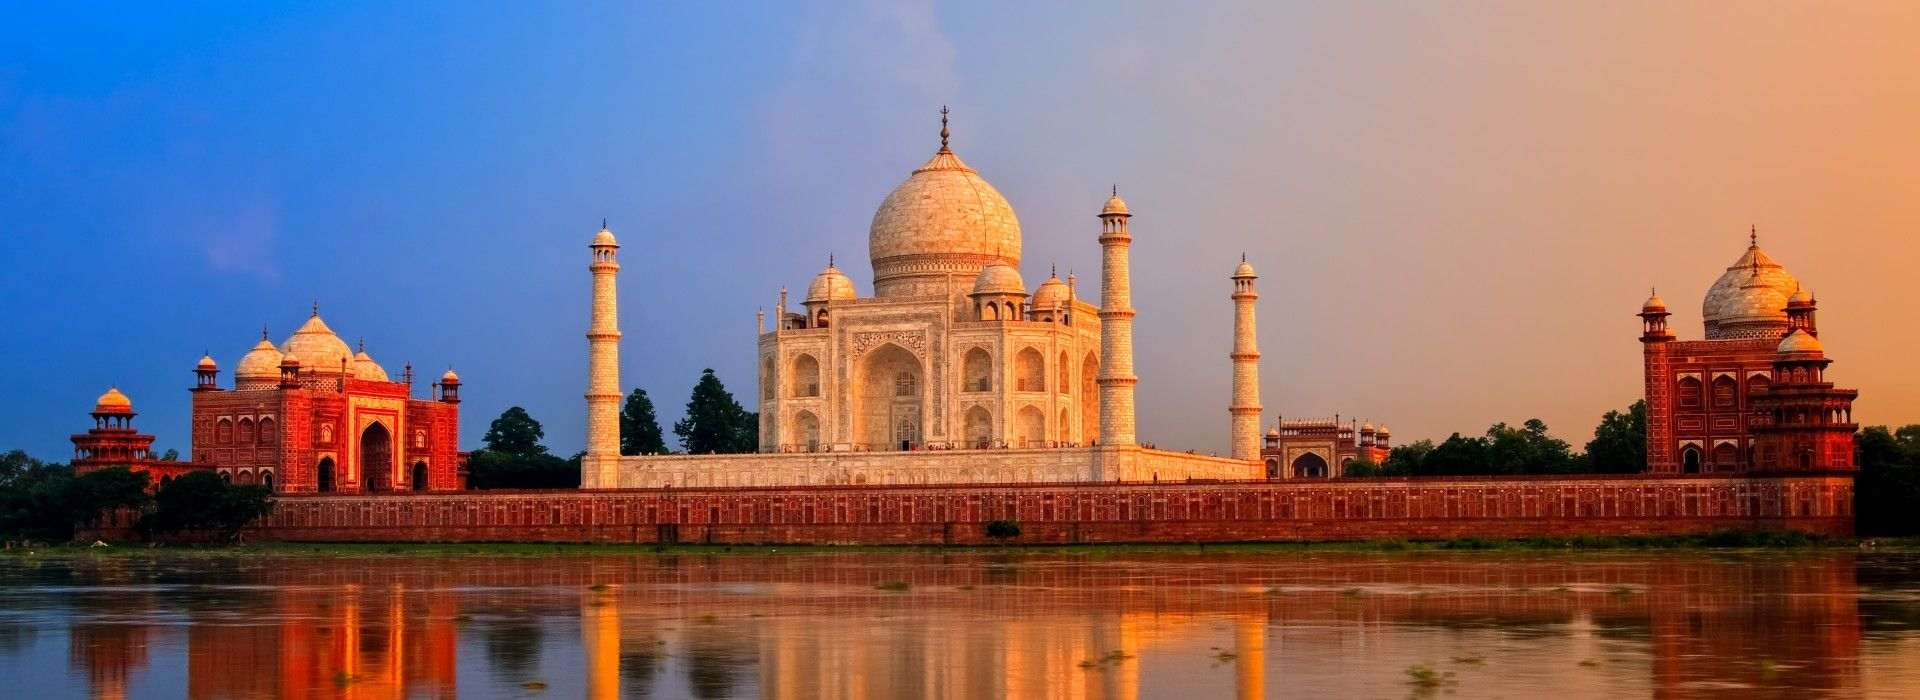 Agra Tours and Holidays 2019/2020